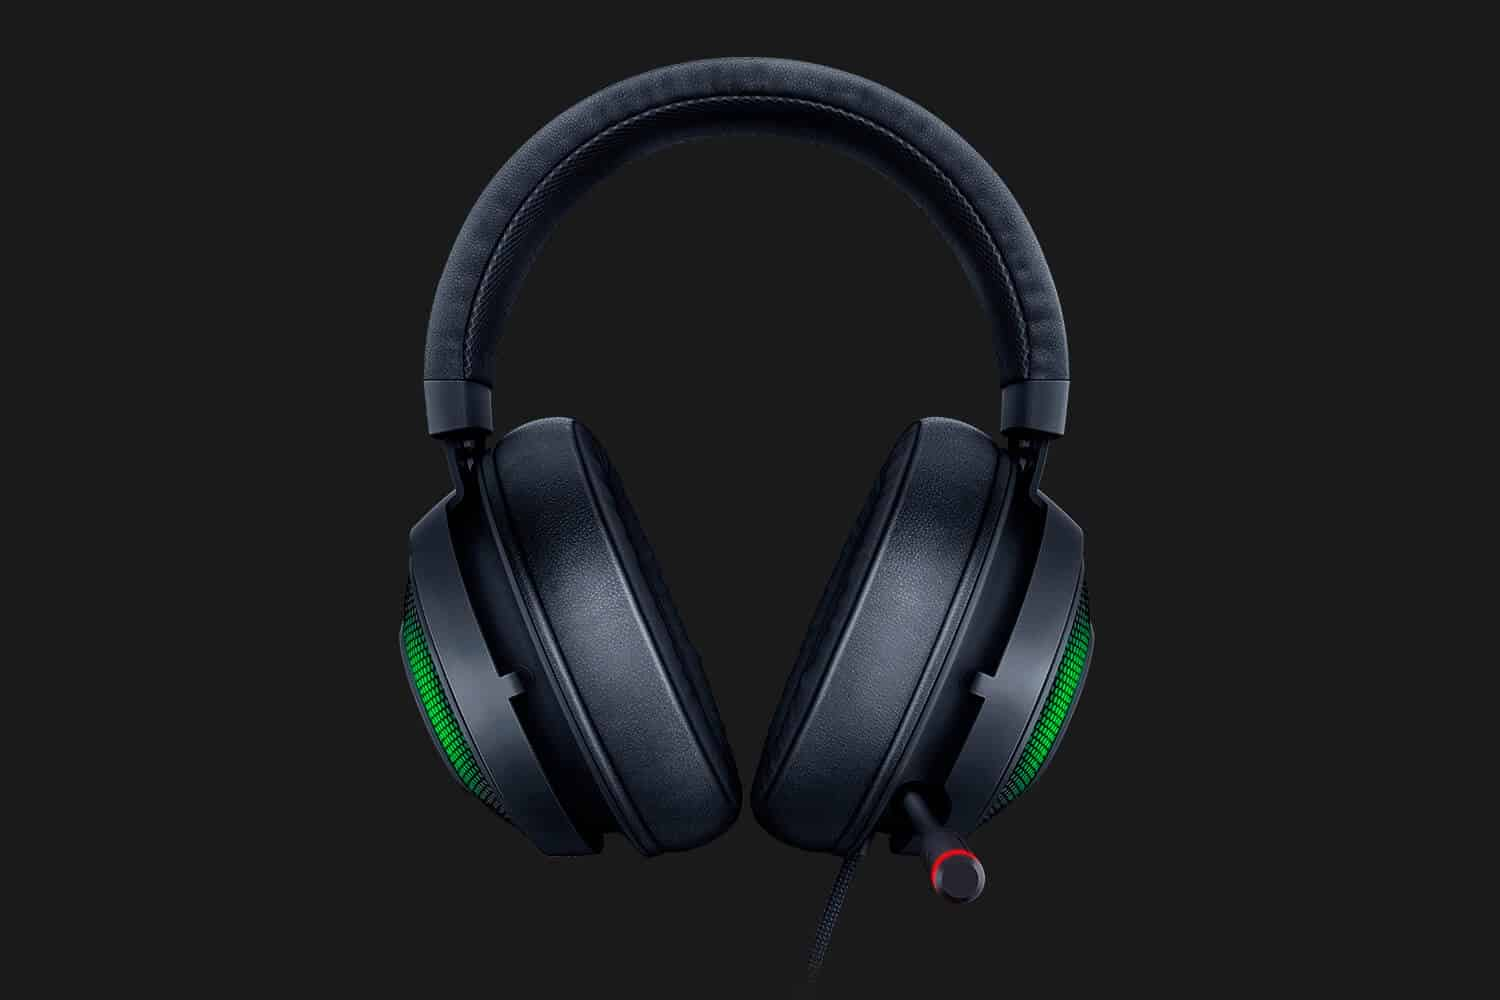 Review of the Razer Kraken Ultimate Tournament Edition: A gaming headset